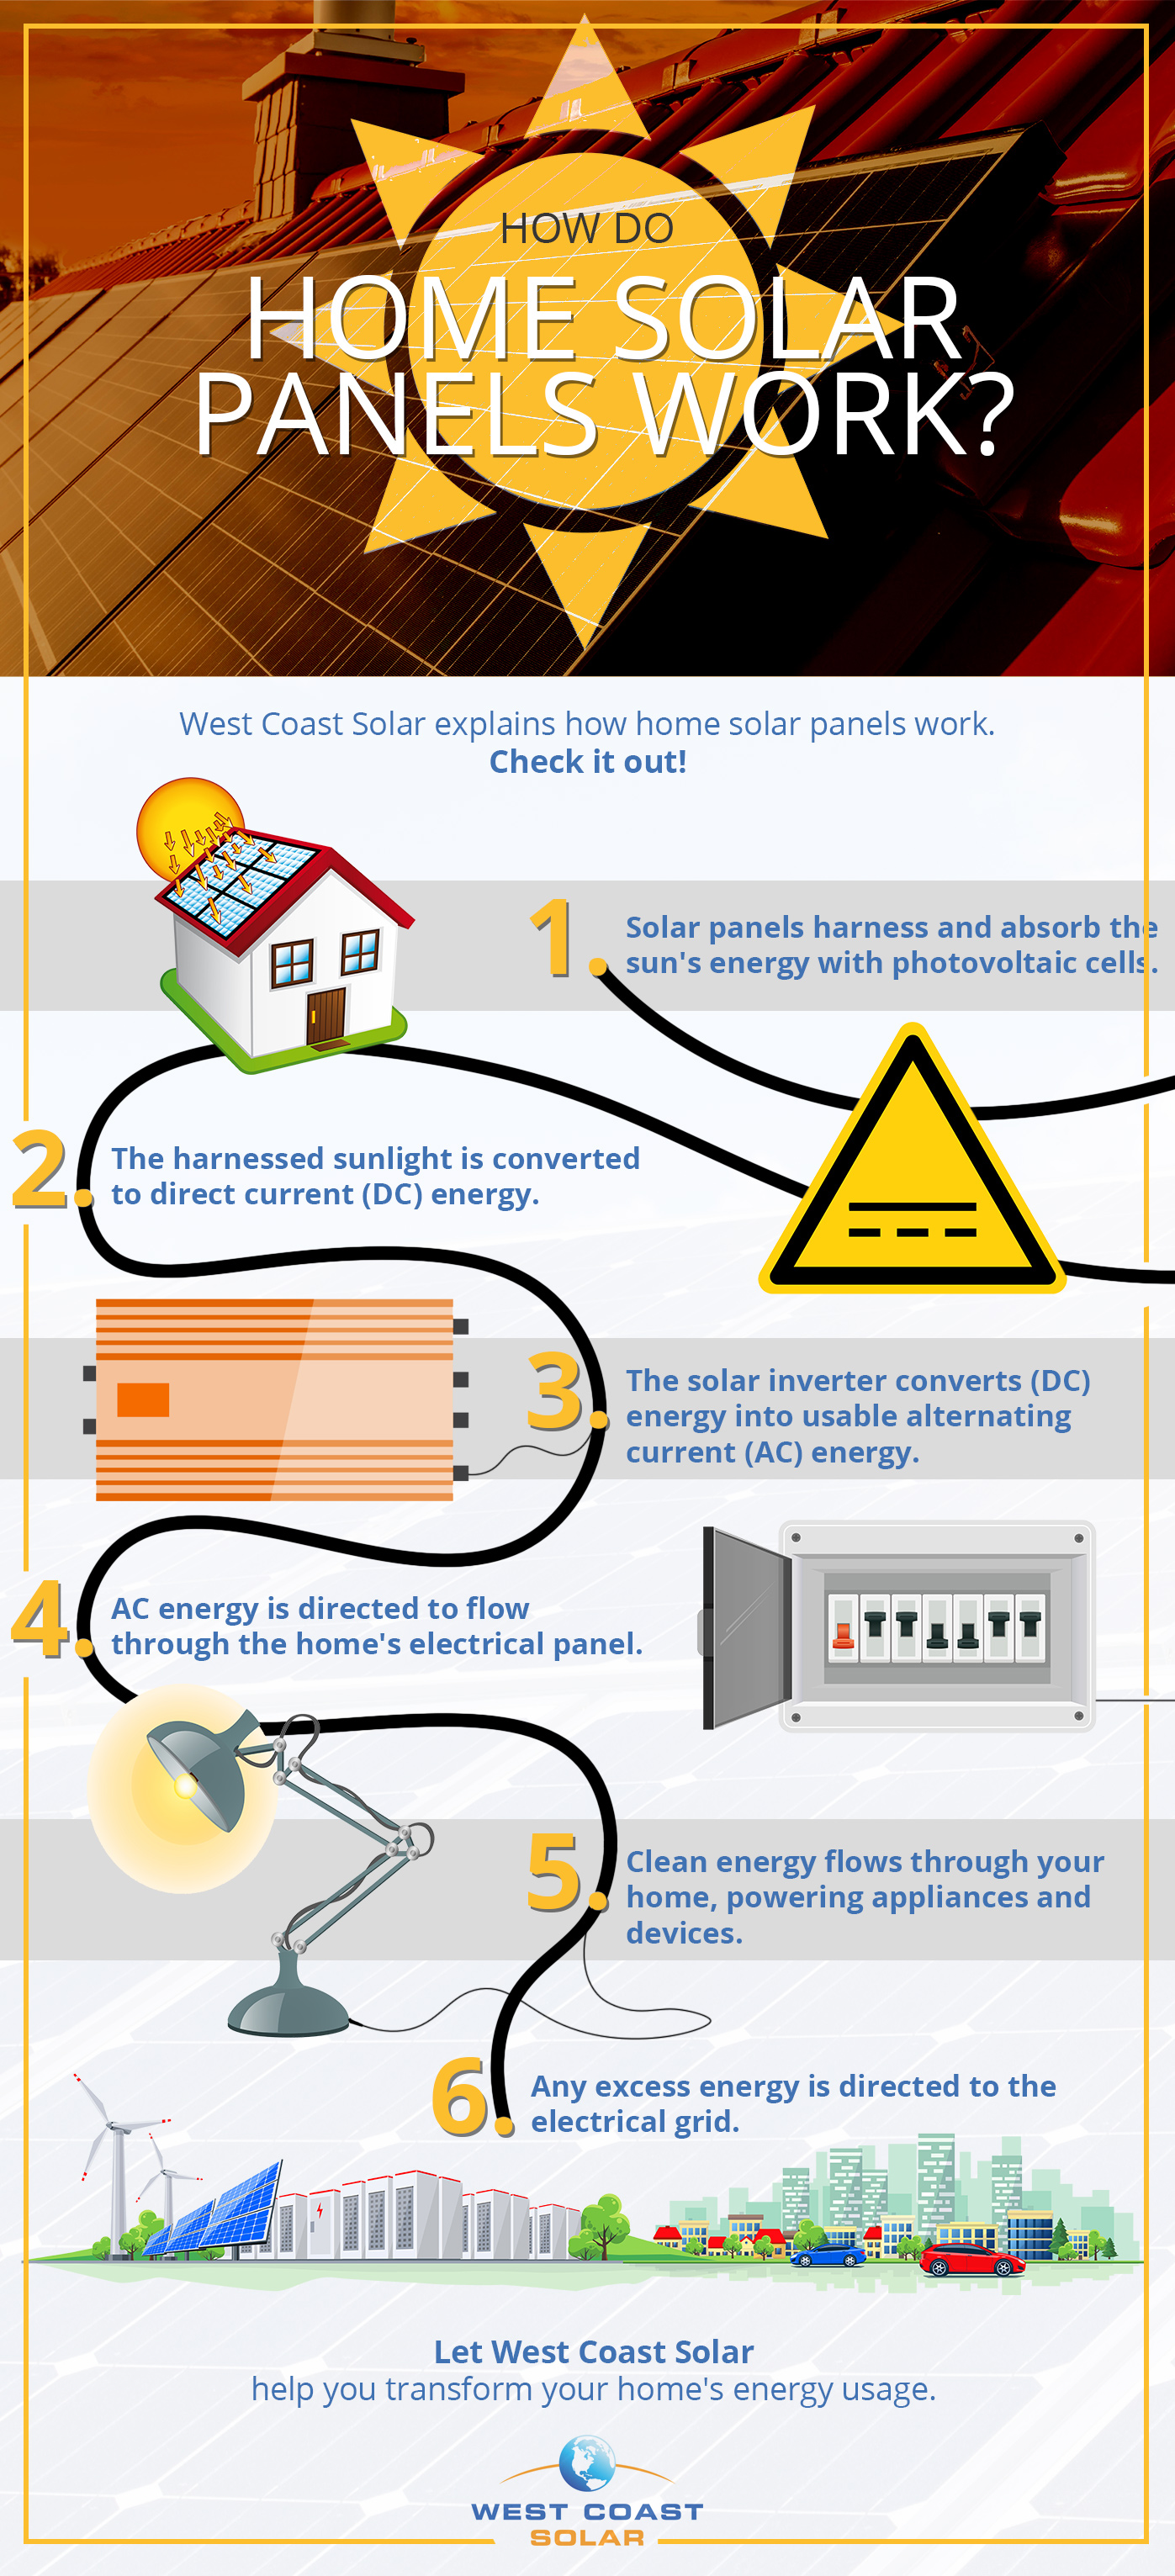 Infographic that gives a step-by-step explanation of how home solar panels work